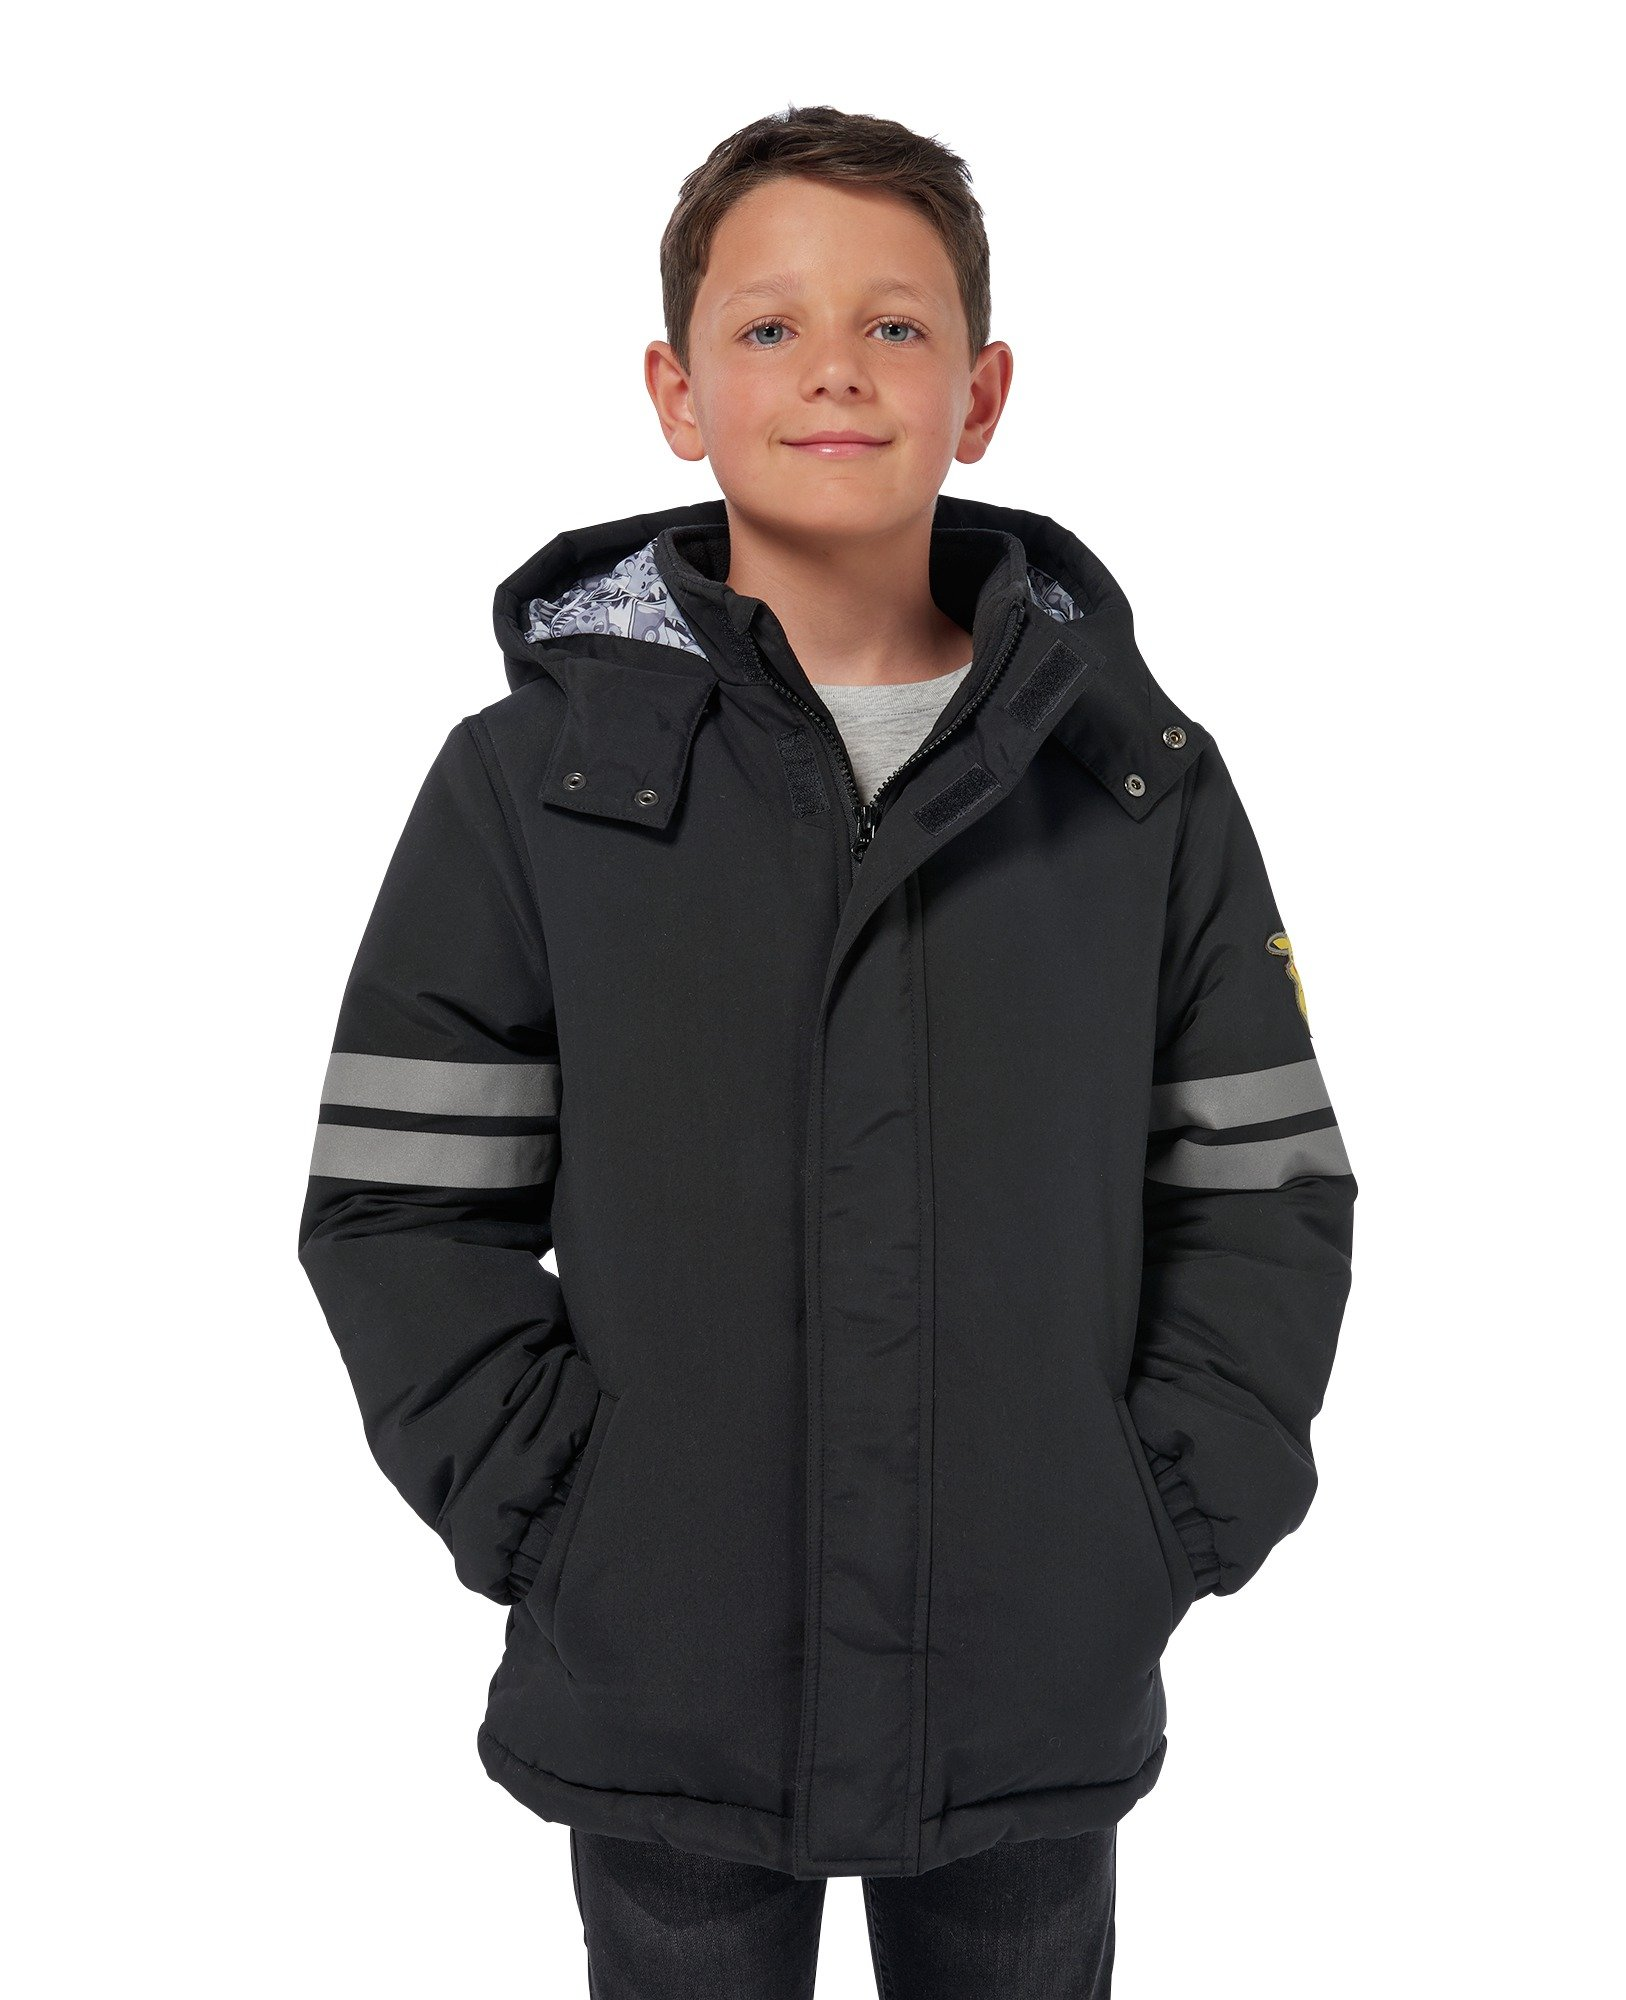 Image of Pokemon Black Jacket - 5-6 Years